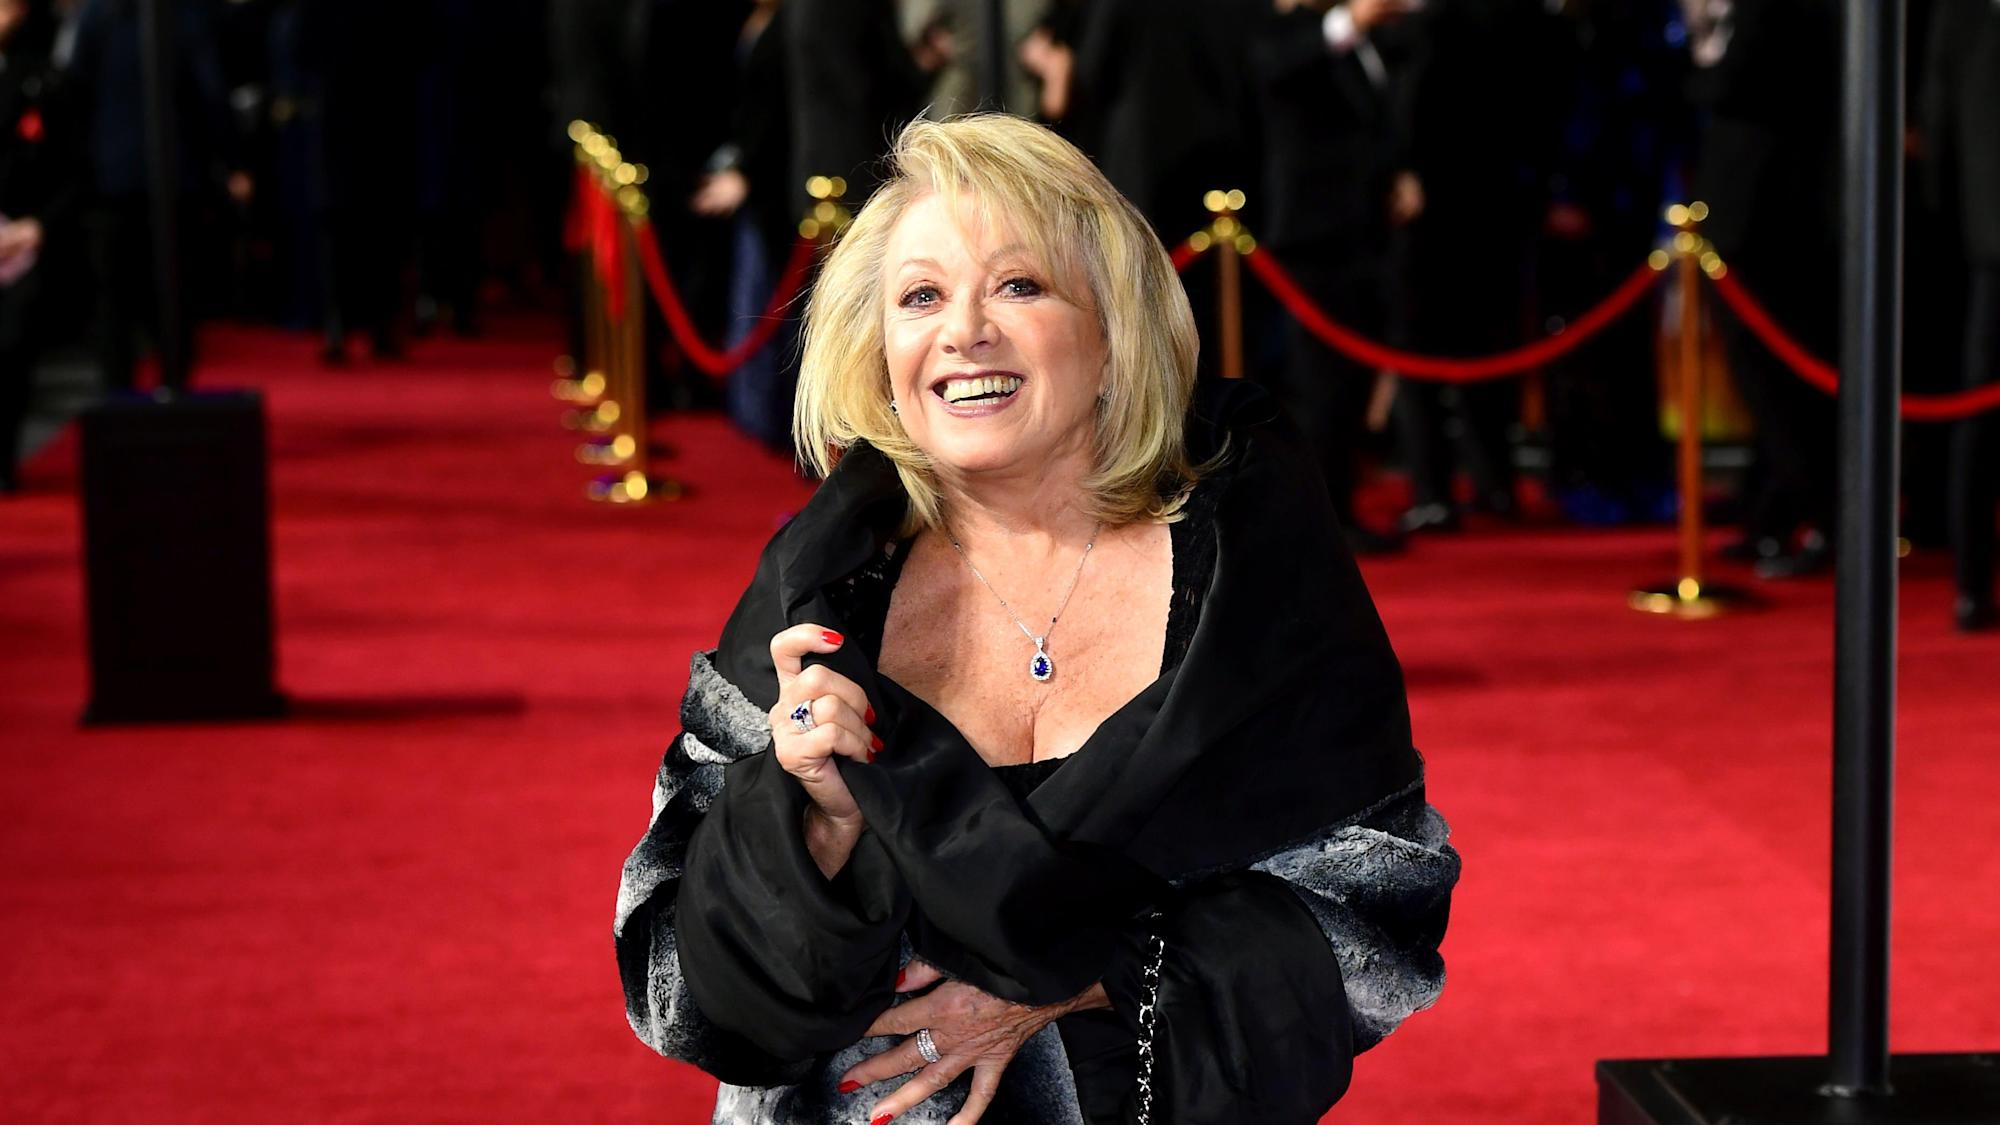 Elaine Paige performs new version of Memory from Cats as she gets Covid jab